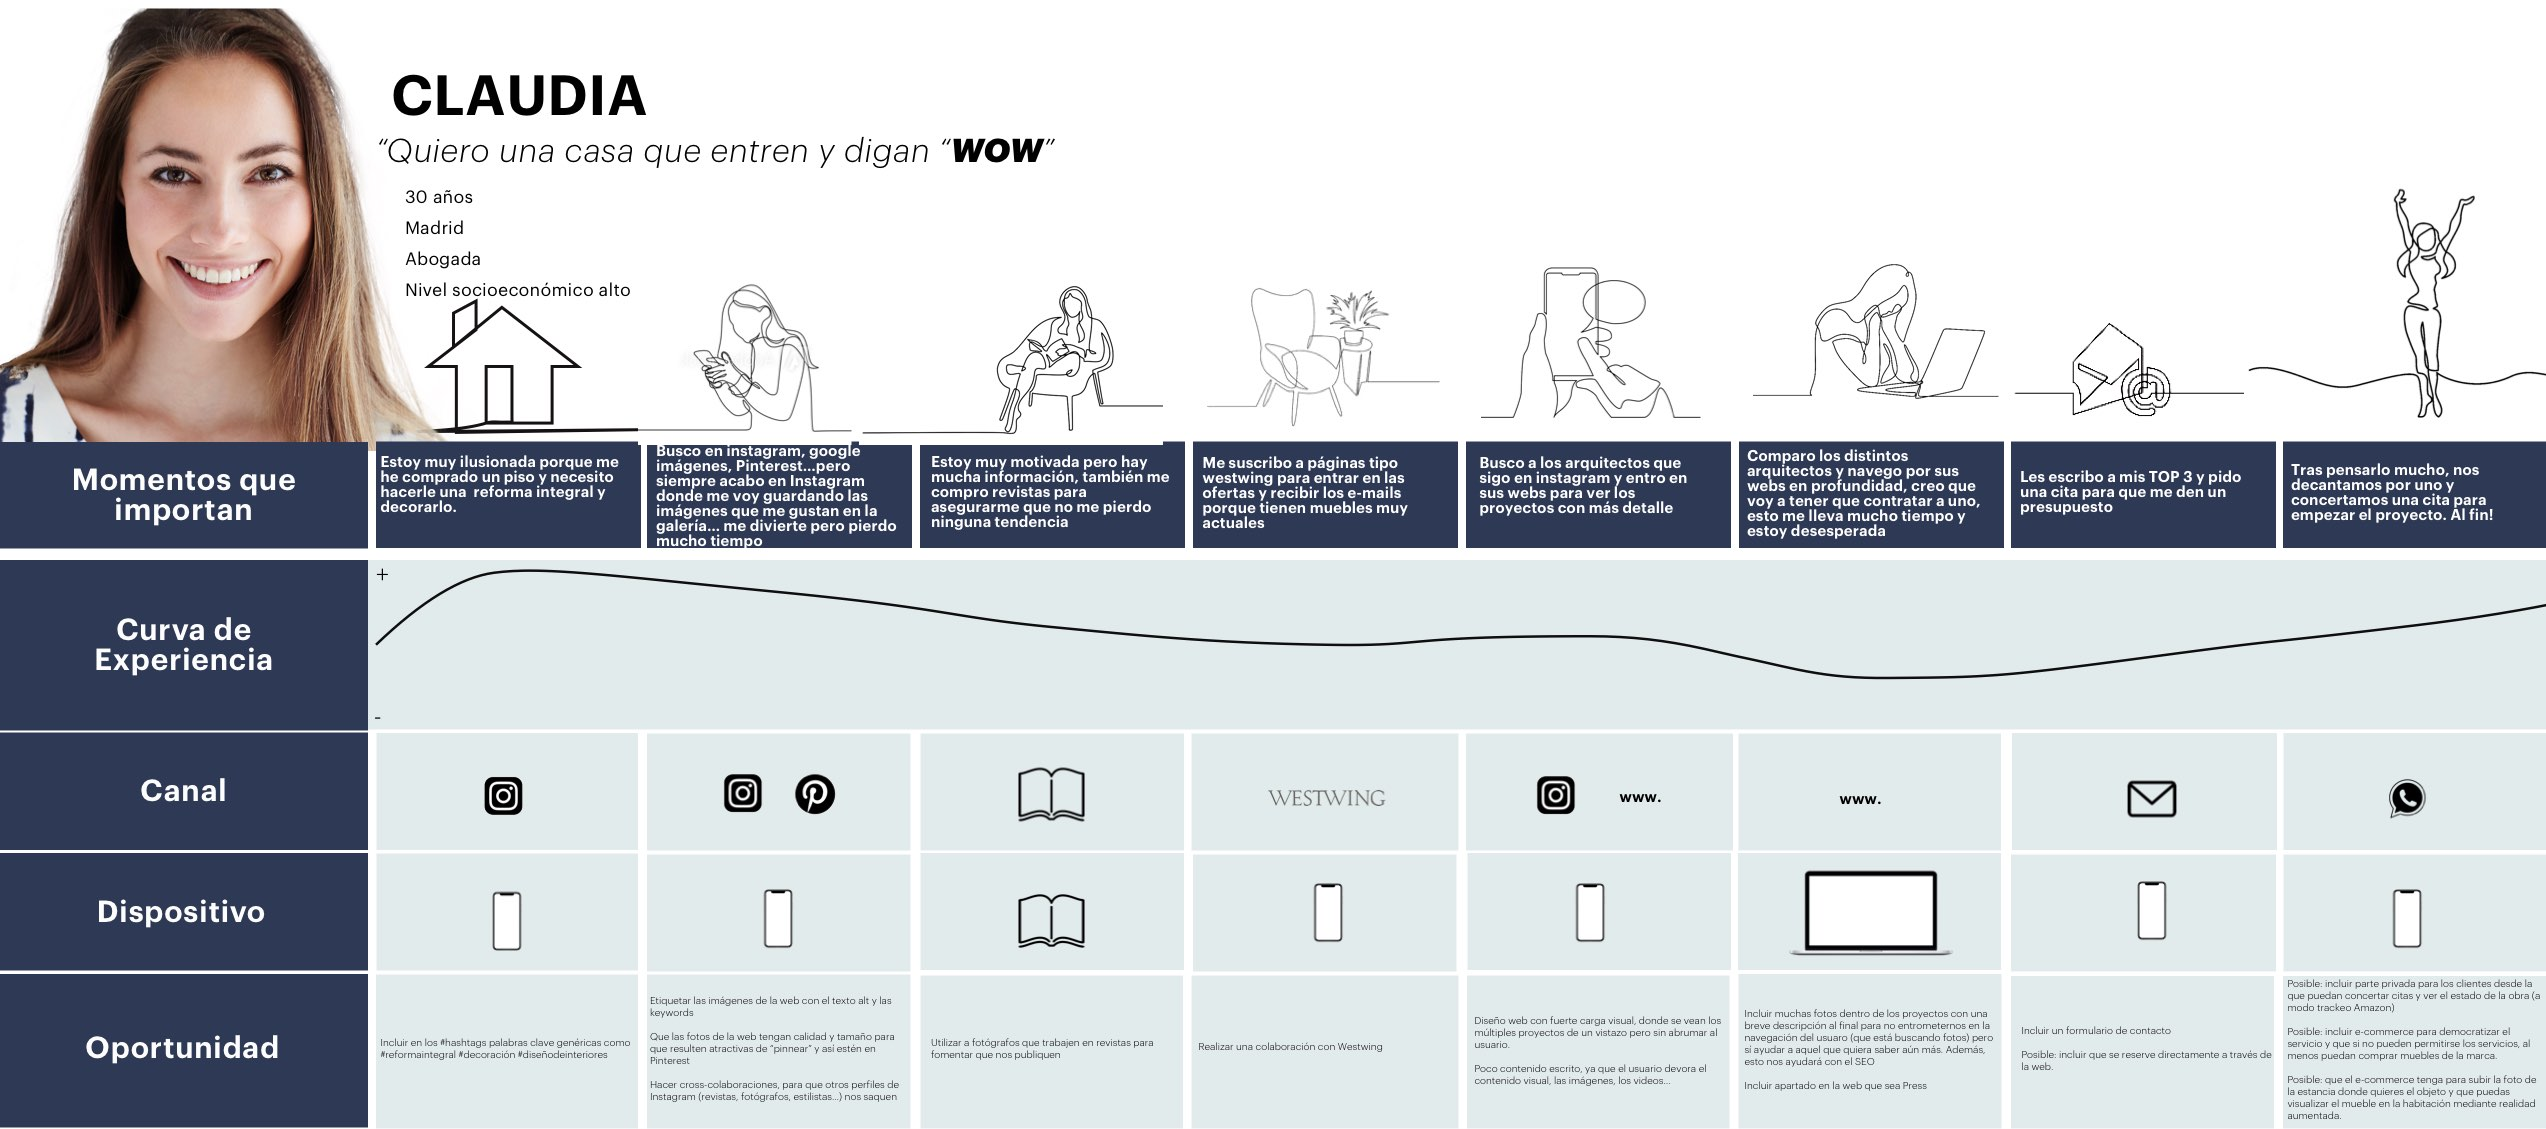 Minimalistic UX Customer Journey Design Thinking Human Centered Design HCD